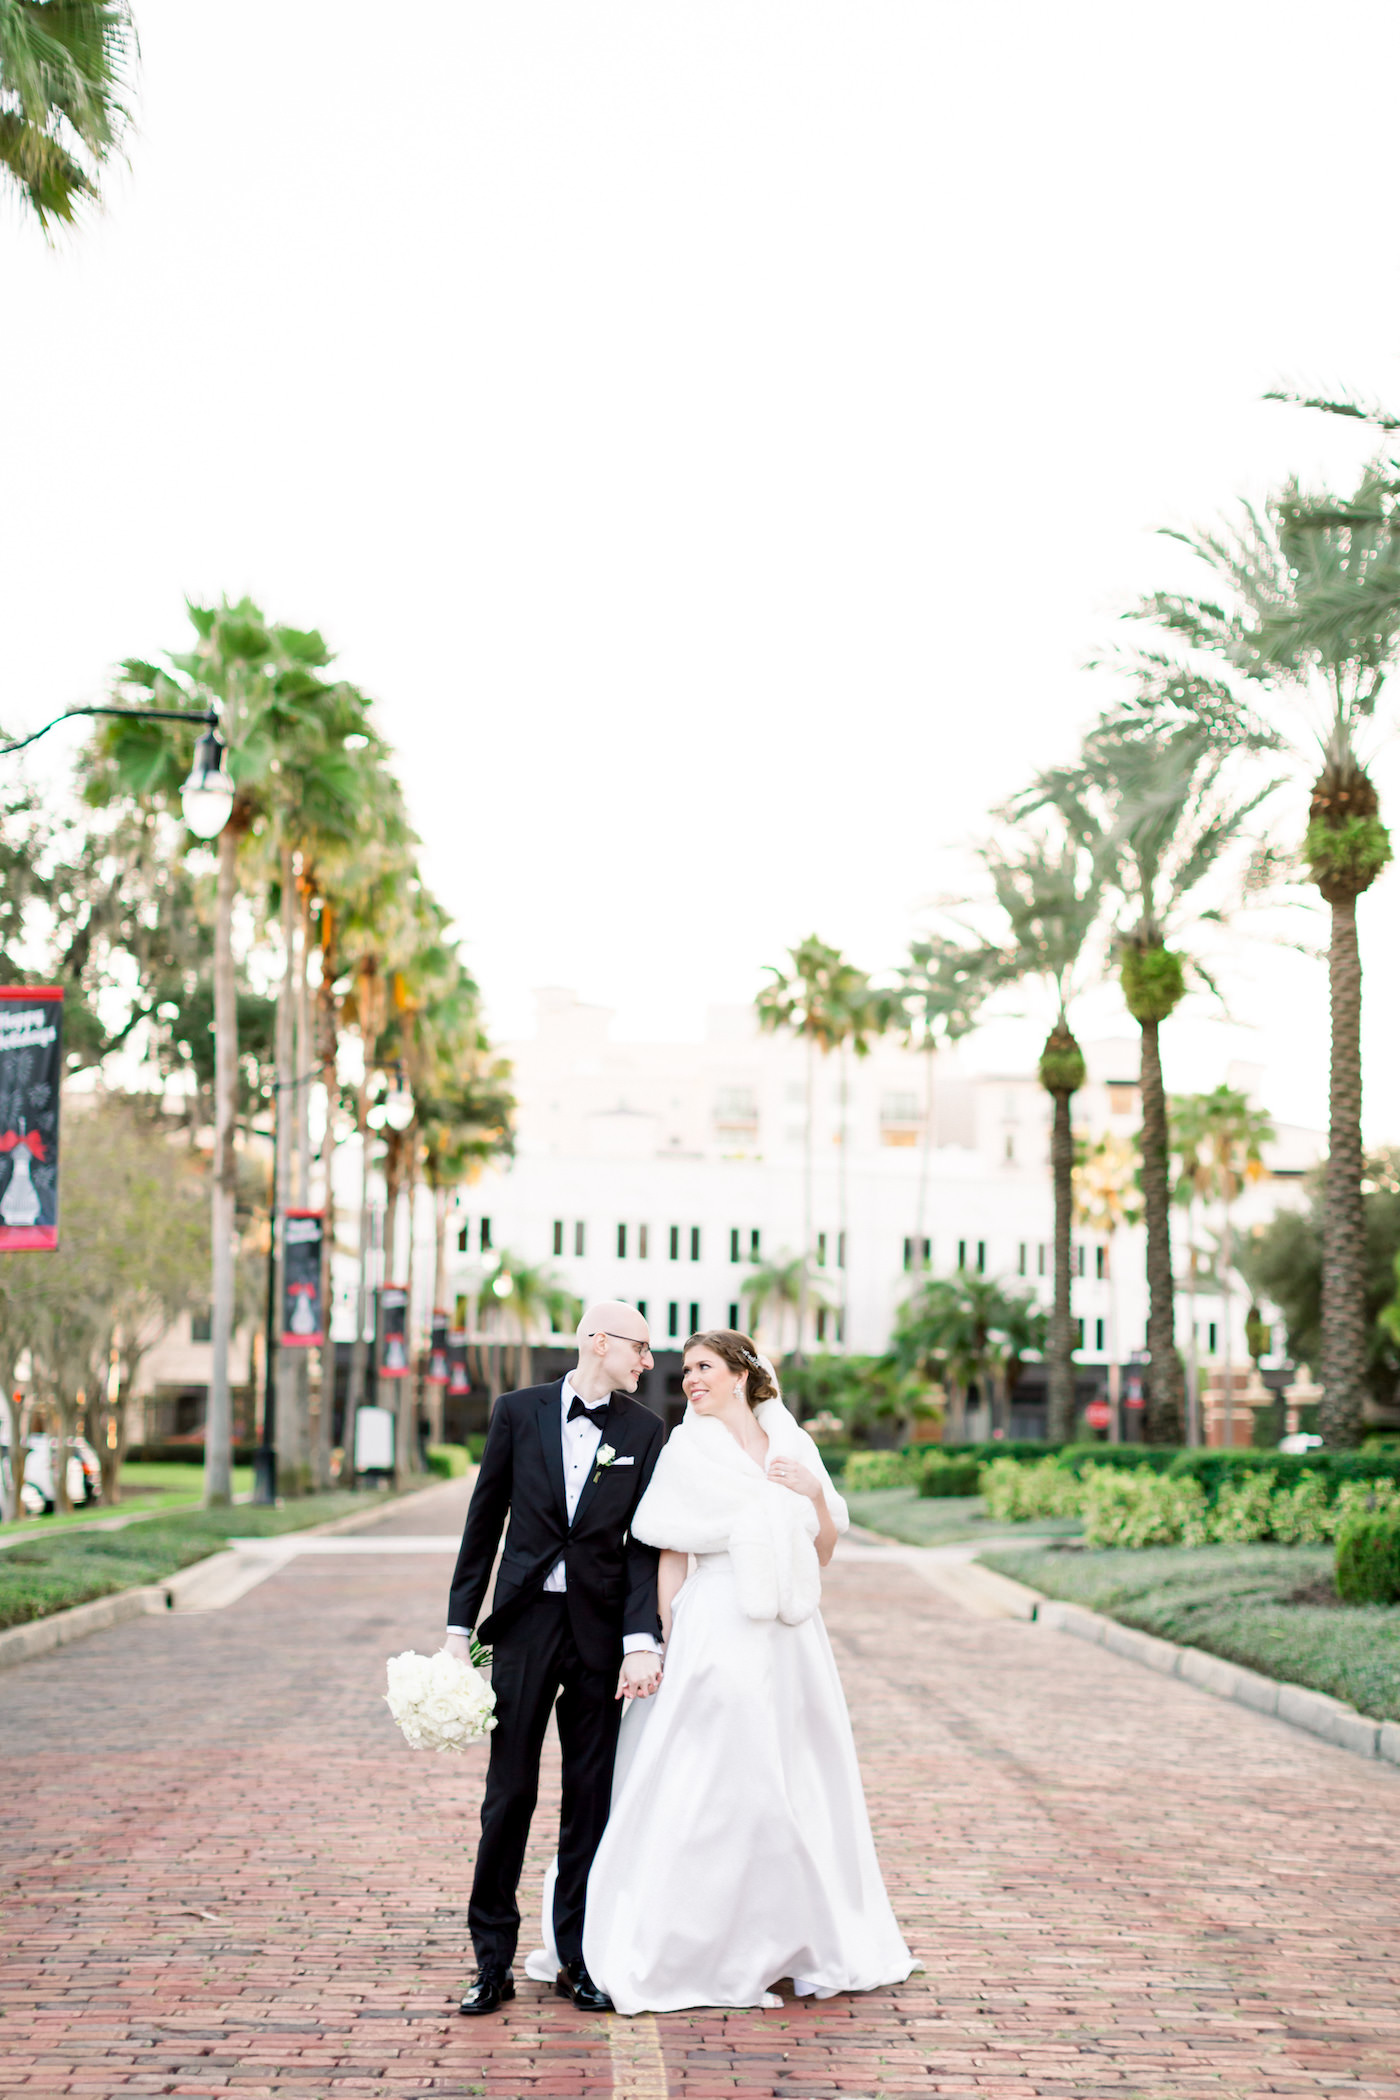 Classic Bride and Groom on the Streets at The University of Tampa | Wedding Photographer Shauna and Jordon Photography